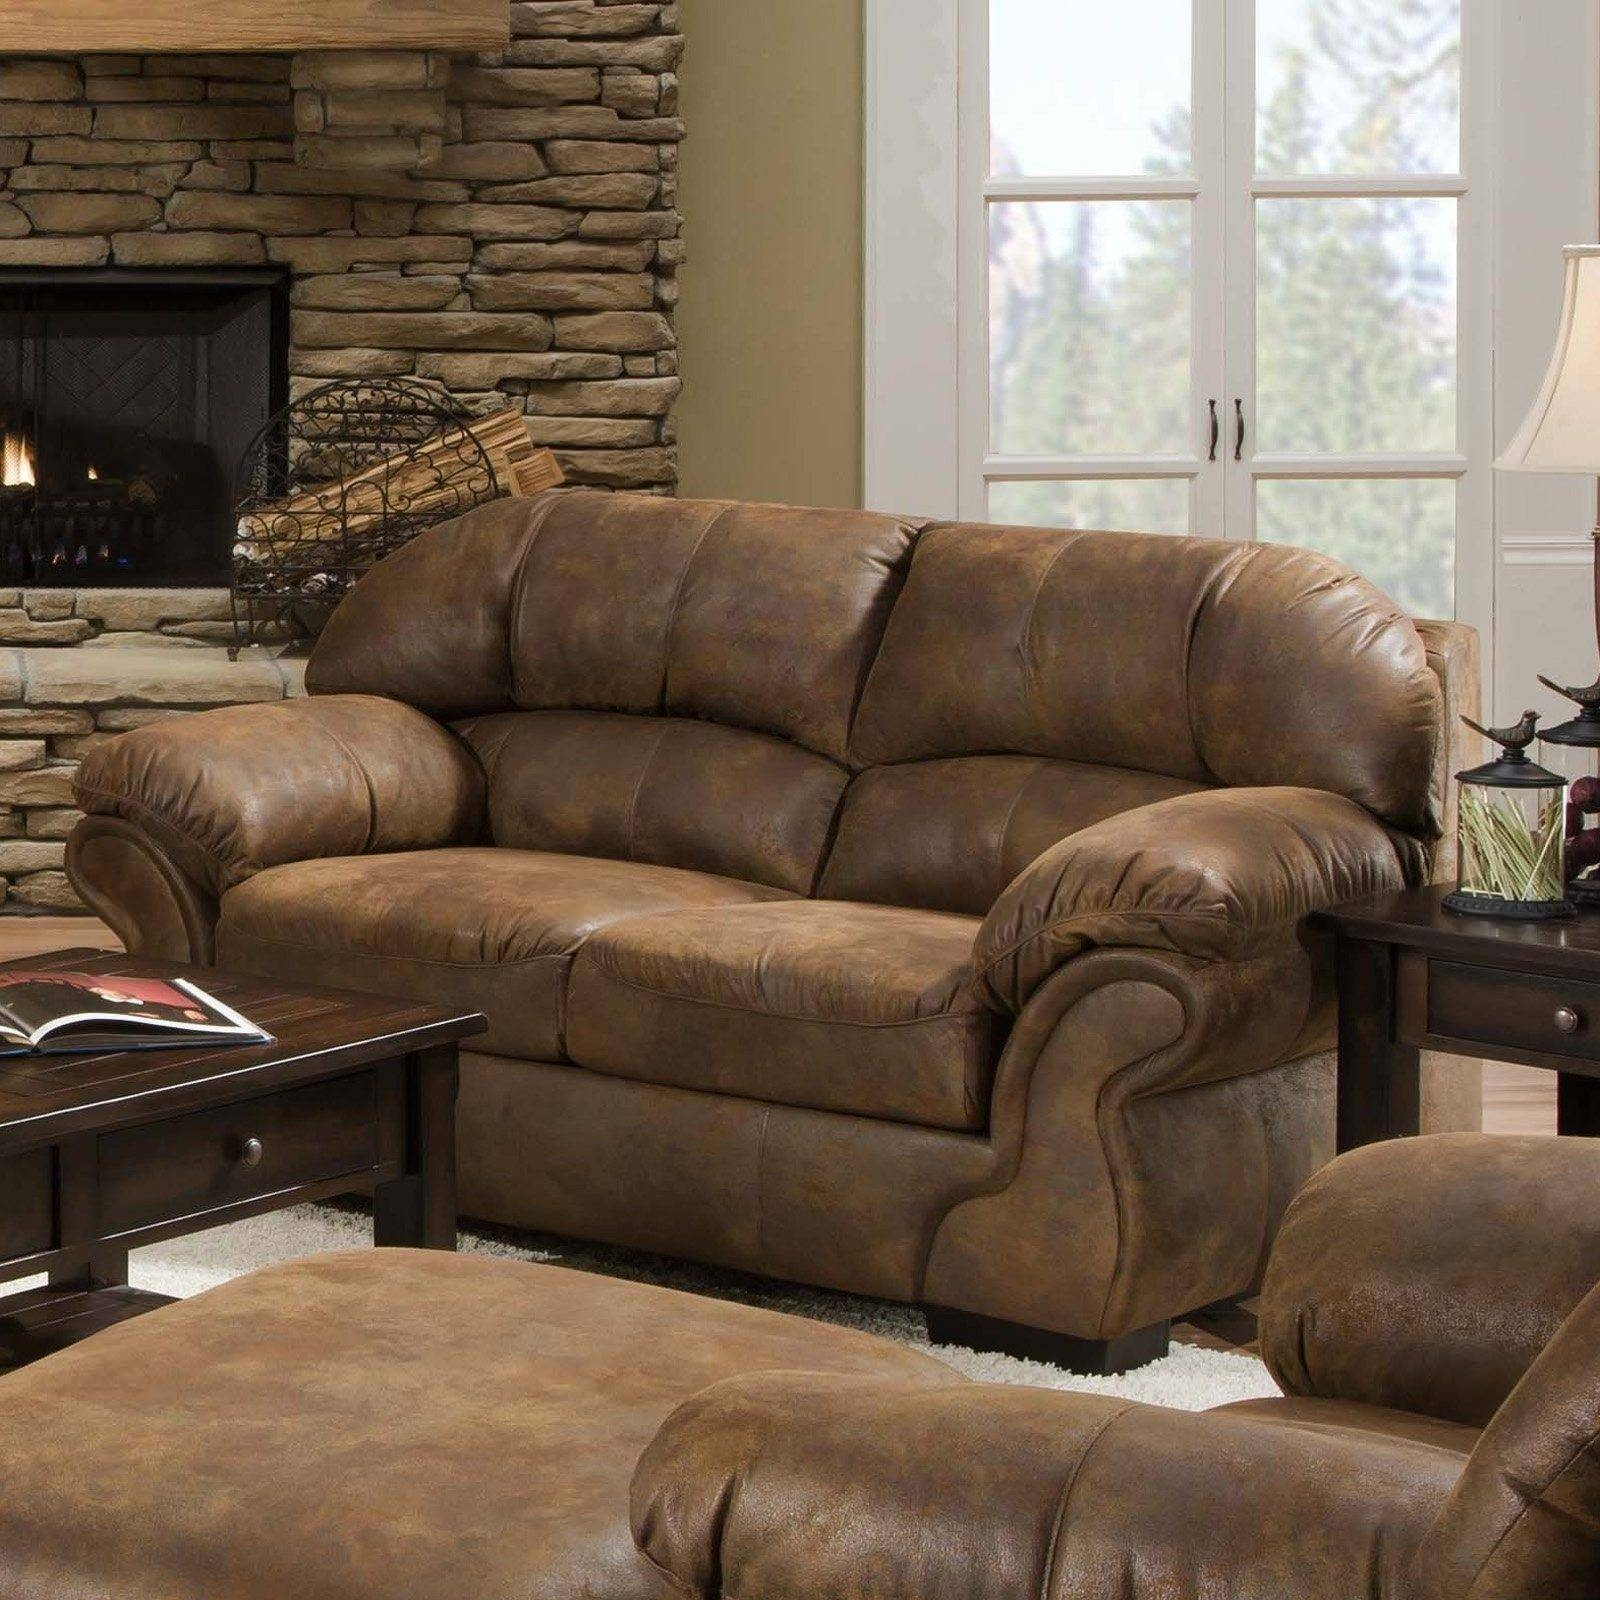 Furniture: Perfect Living Furniture Ideas With Deep Seated Couch inside Bomber Leather Sofas (Image 8 of 15)